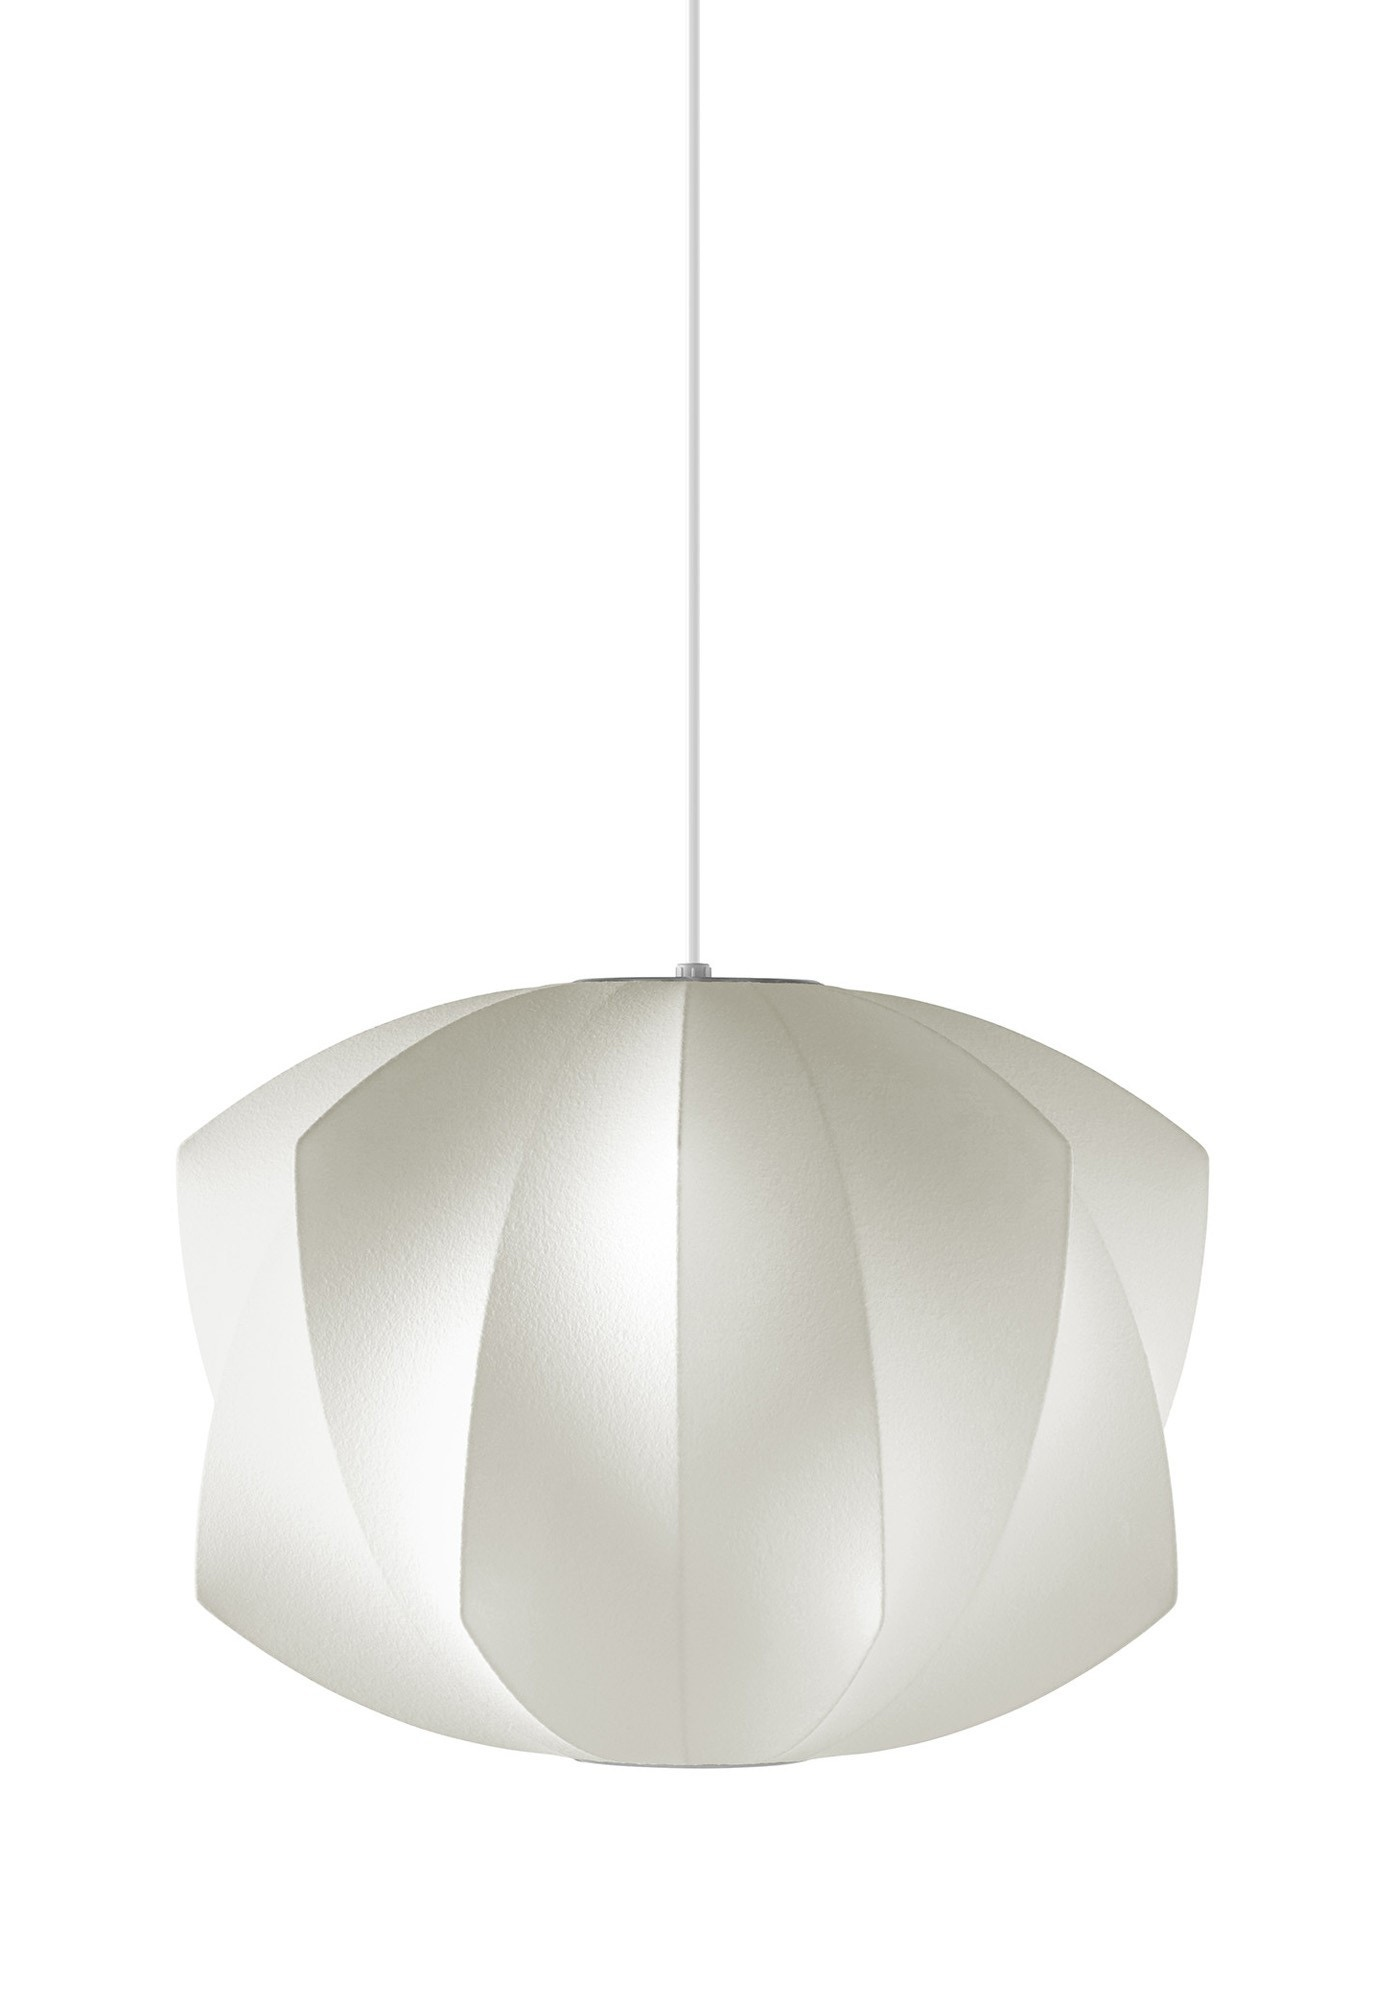 herman miller nelson propeller bubble lamp pendant